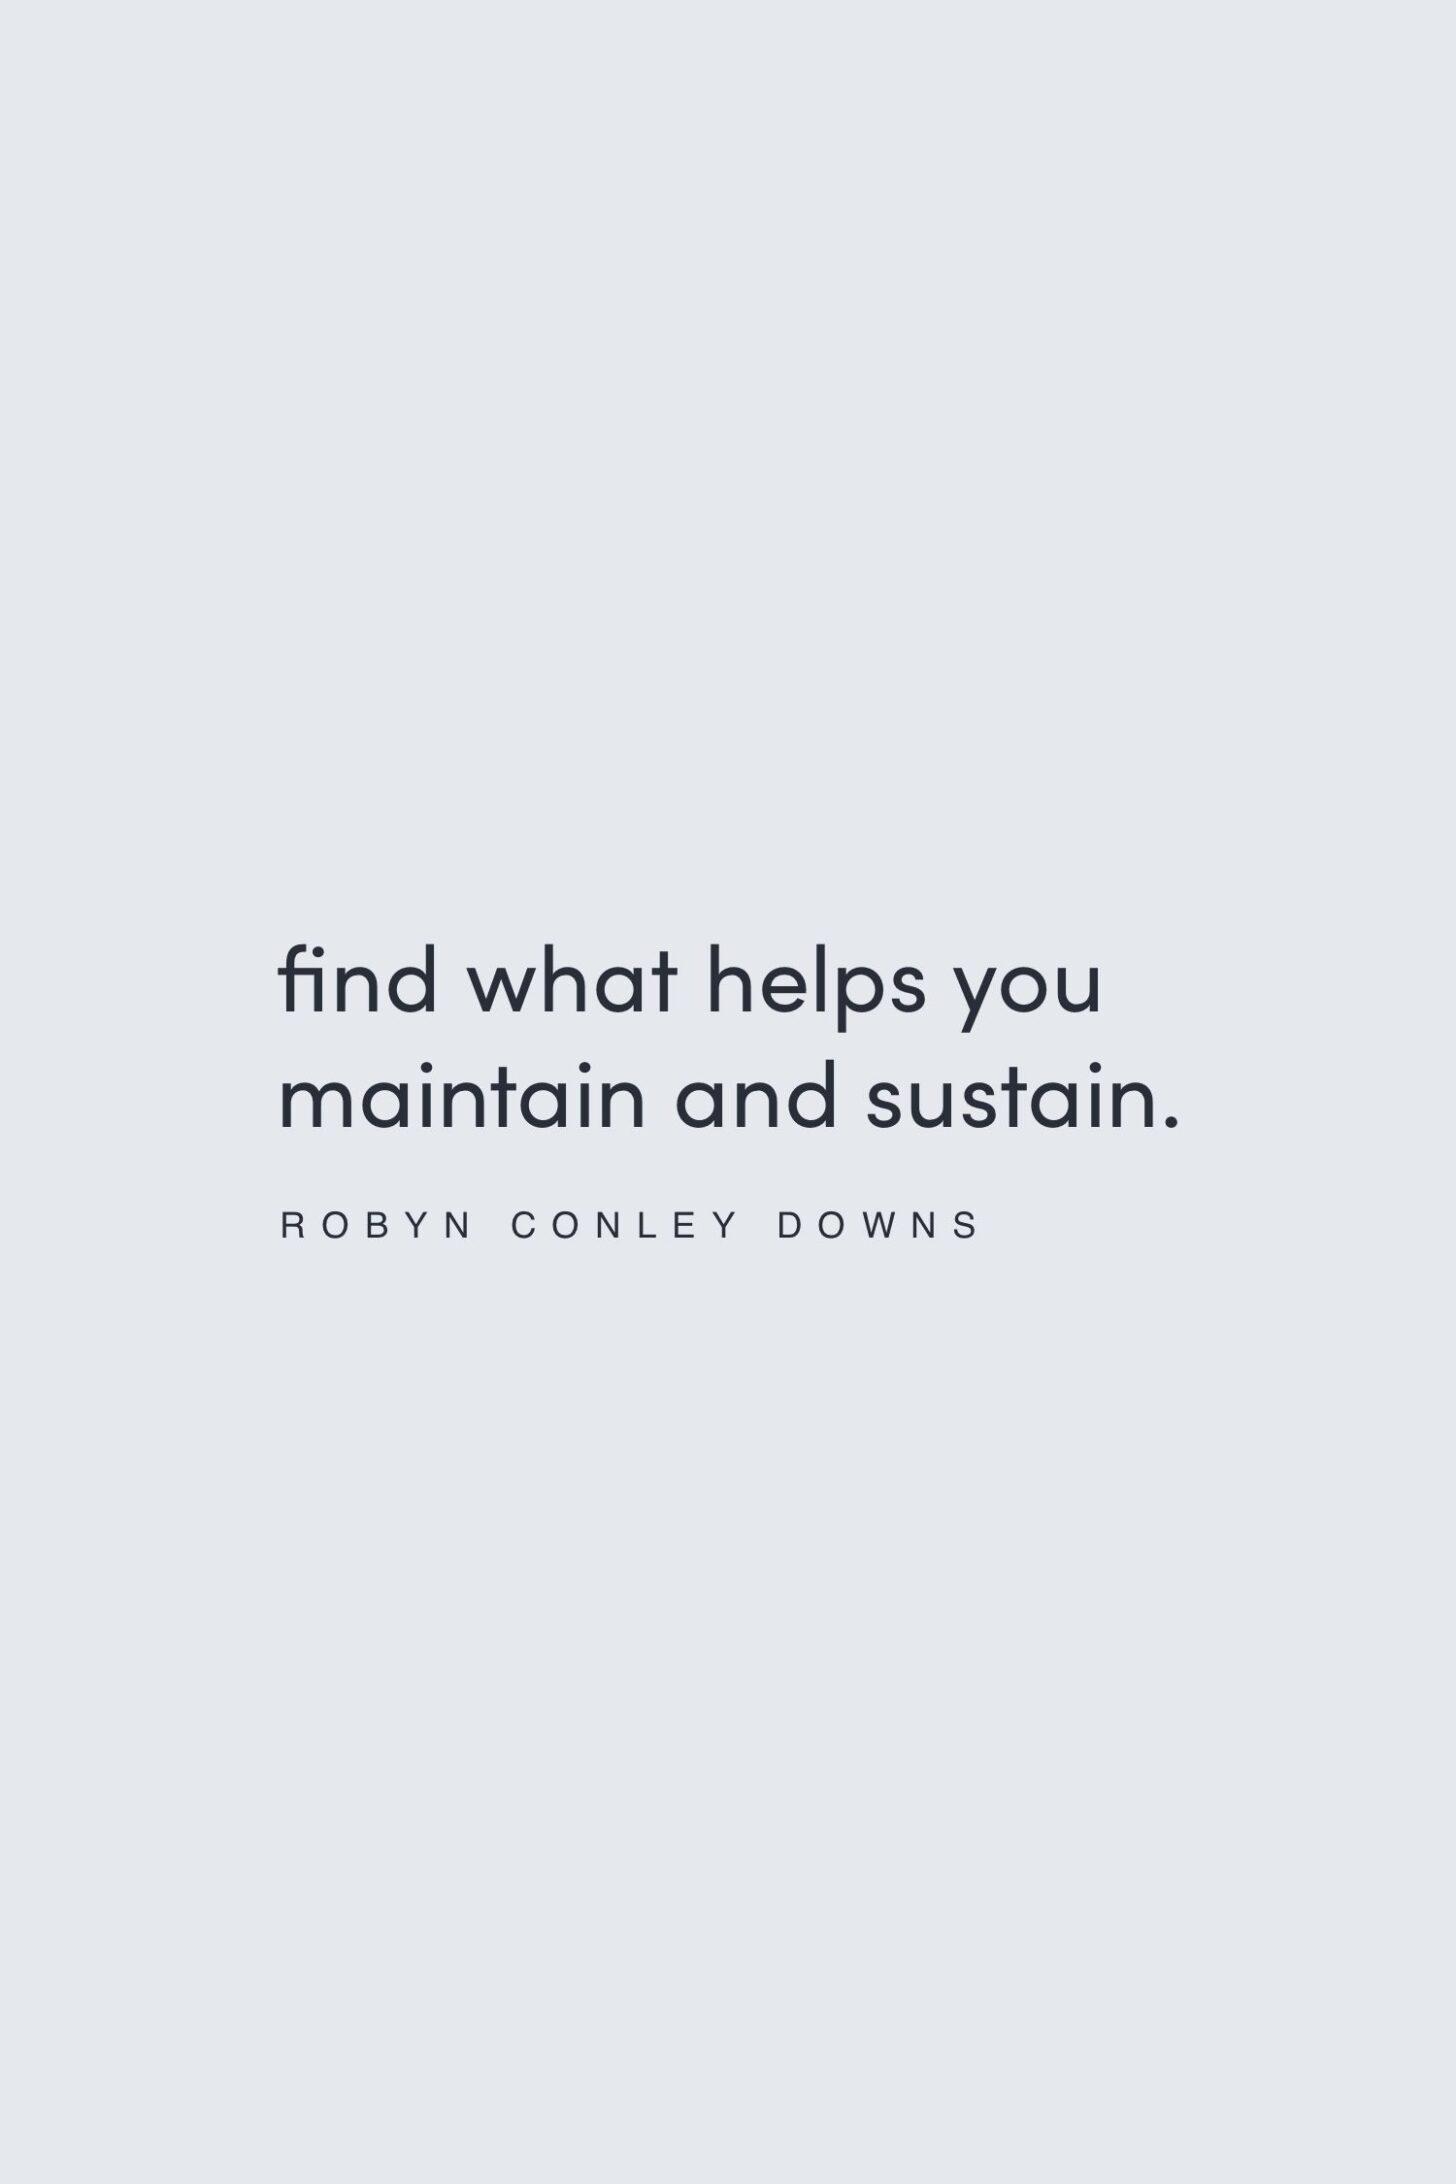 Quote on finding what sustains you by Robyn Conley Downs on the Feel Good Effect Podcast #realfoodwholelife #feelgoodeffectpodcast #motivationalquote #inspirationalquote #positivityquote #wordstoliveby #productivityquote #selflovequote #selfcarequote #selfcompassionquote #nourishmentquote